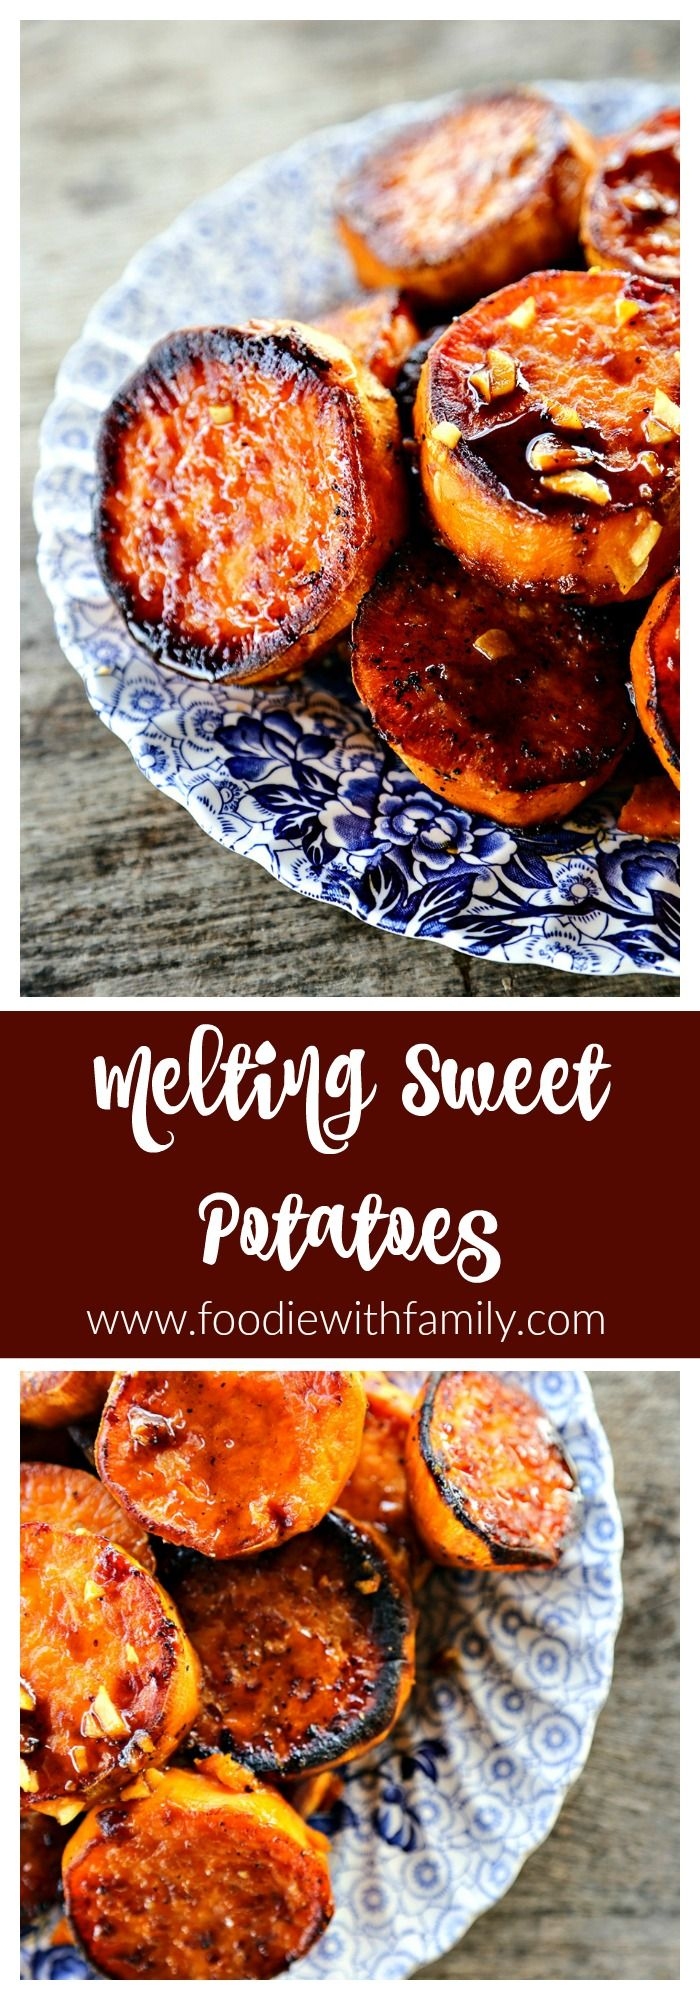 Melting Sweet Potatoes: Deeply caramelized, flavourful slices of sweet potatoes so tender they yield to the edge of a spoon.